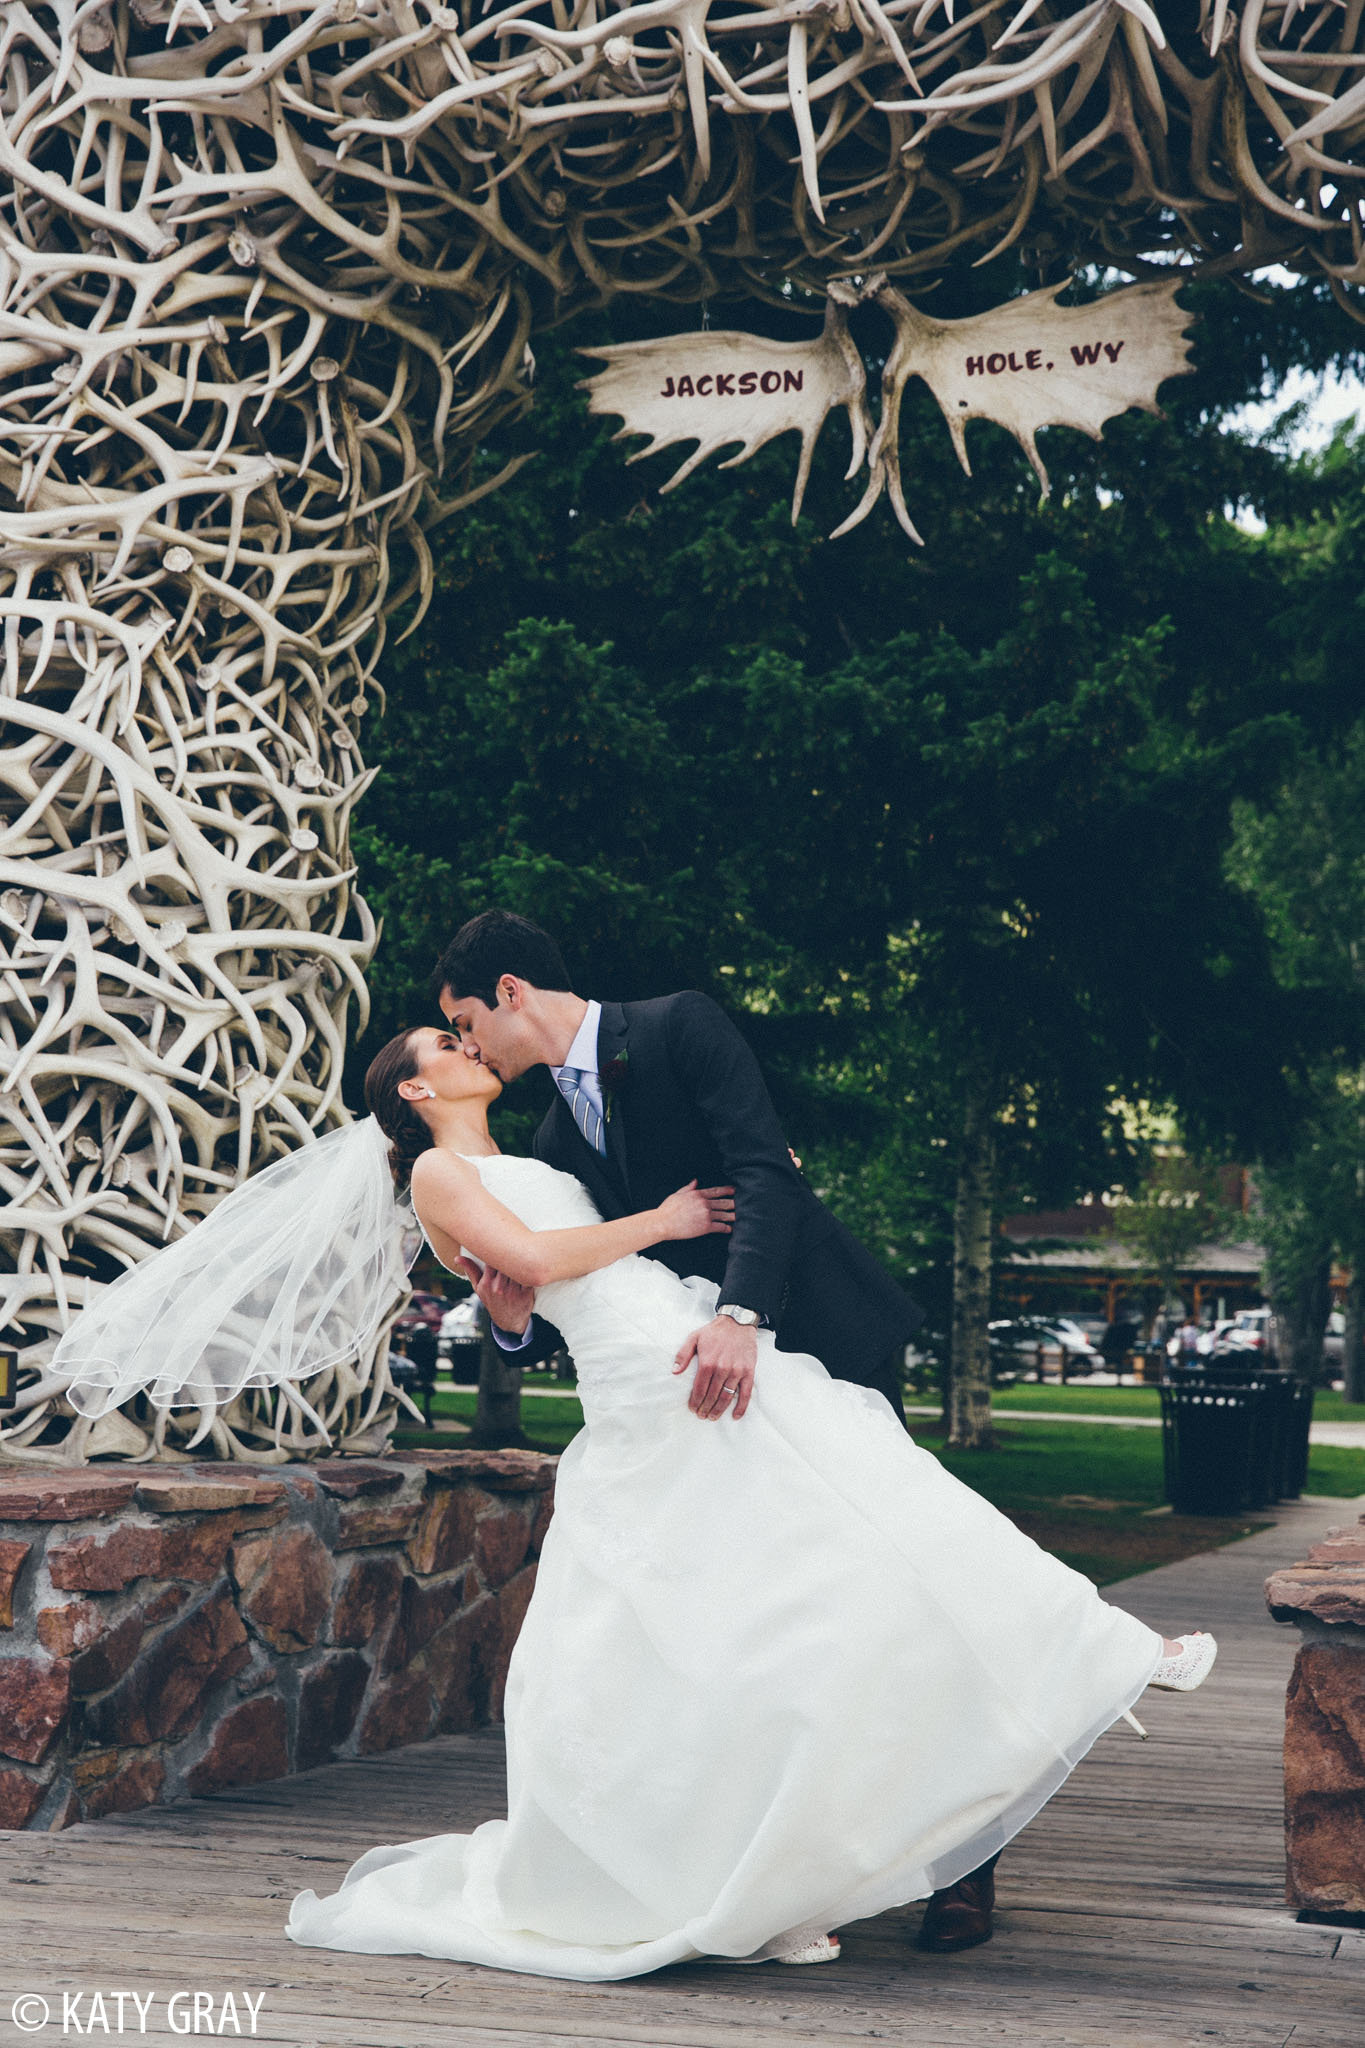 Jackson Hole wedding photos under antler arch